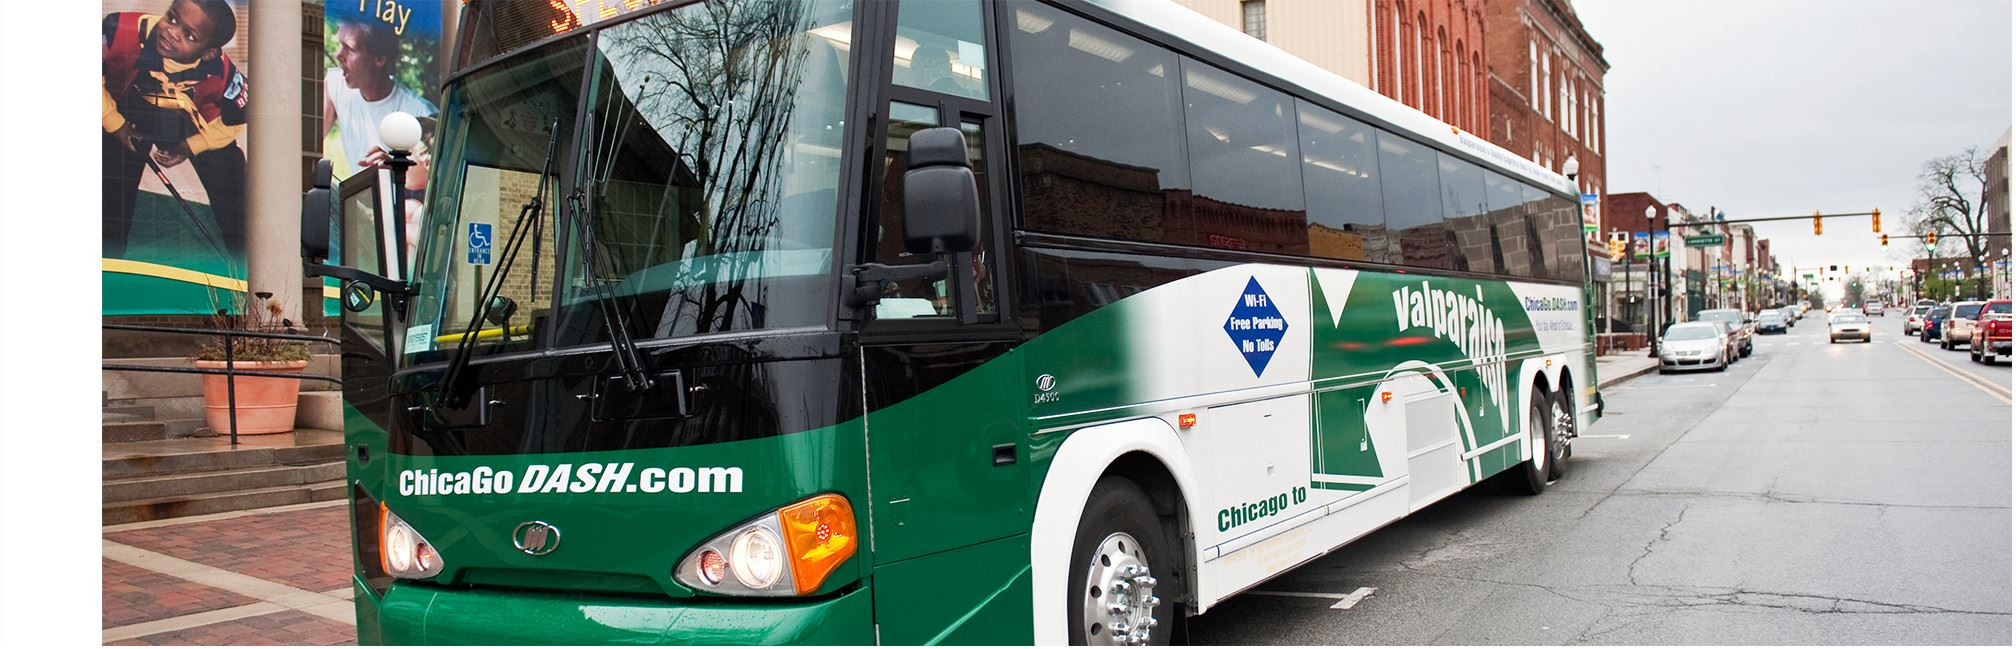 Routes and Timetables | Valparaiso, IN - Official Website